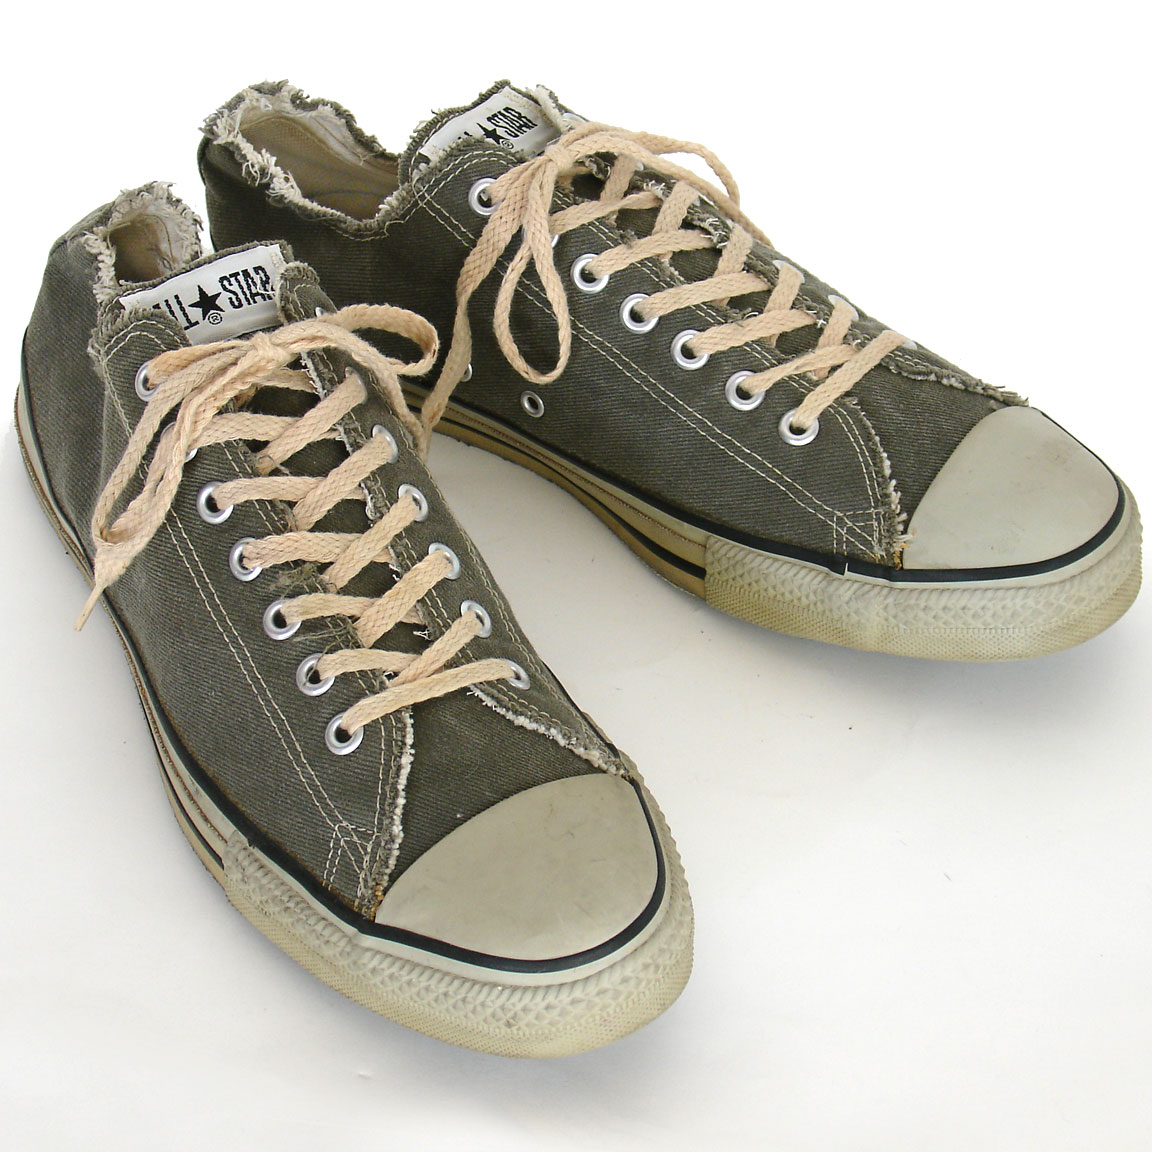 f6ceb52ee3dd11 Vintage American-made Converse All Star Chuck Taylor frayed gray shoes for  sale at http